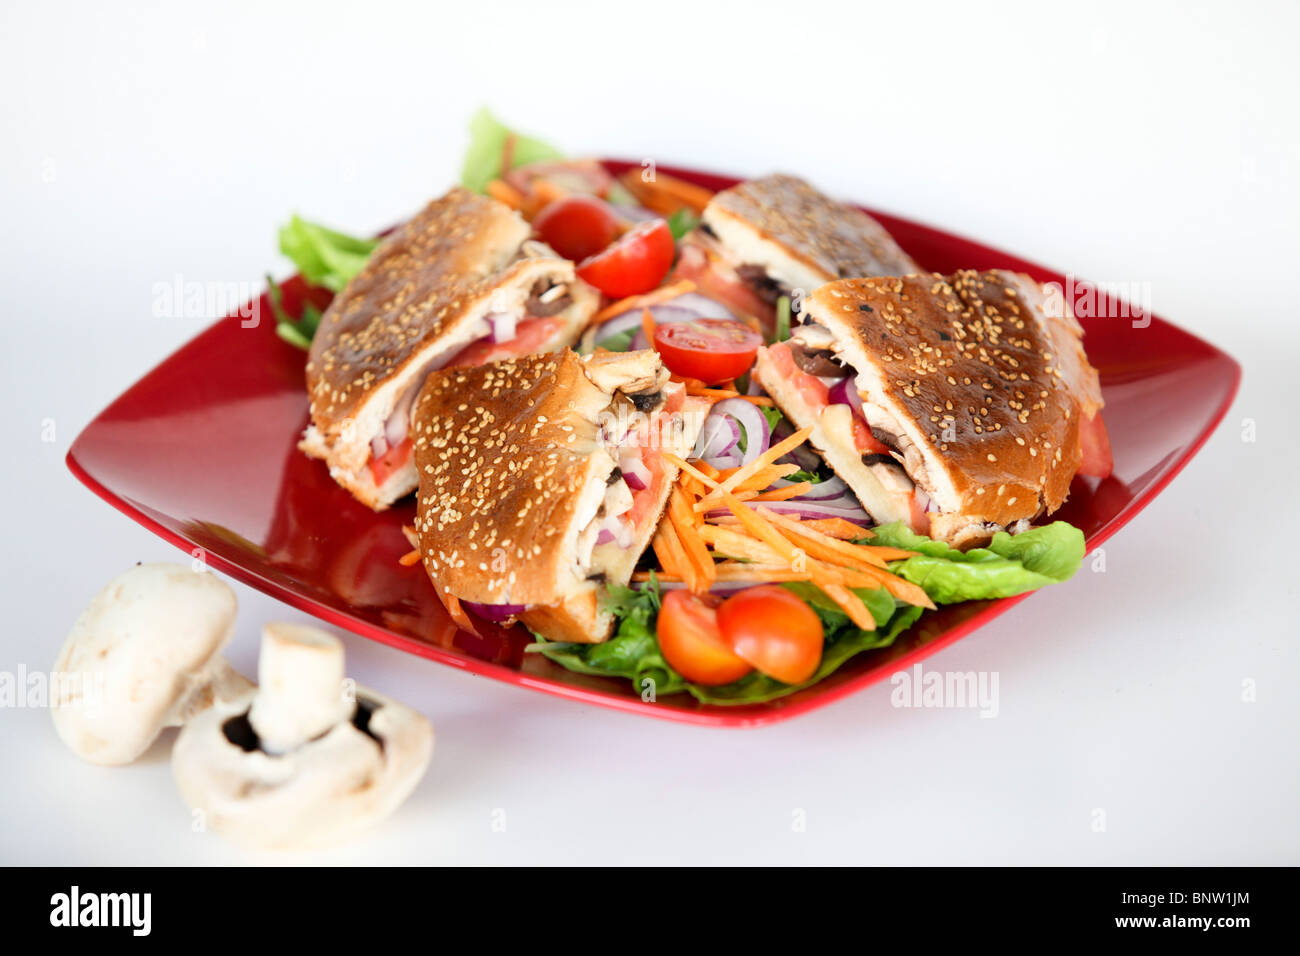 Toasted Cheese bagel sandwich with salad - Stock Image